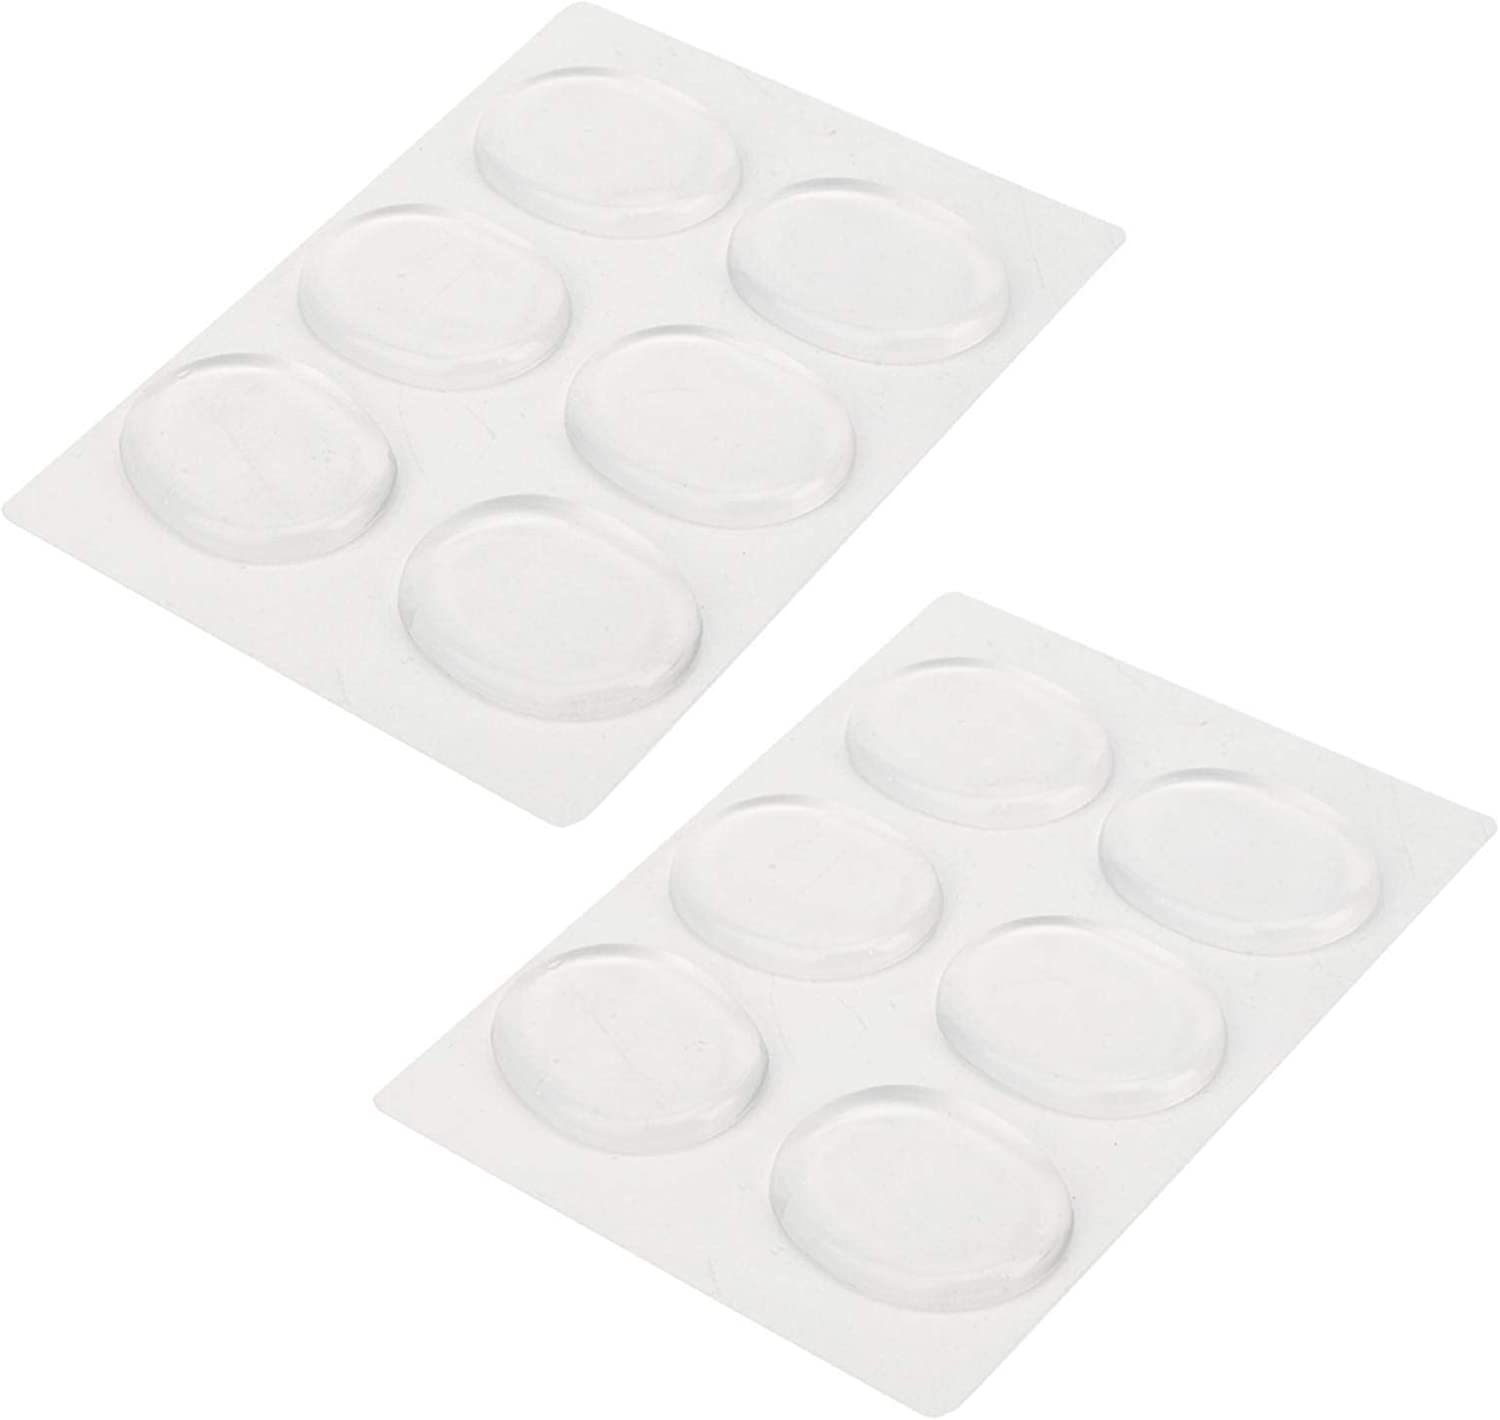 EBTOOLS 12 Pieces Max 40% OFF Year-end gift Drum Silencer Silicone Dampeners Damper